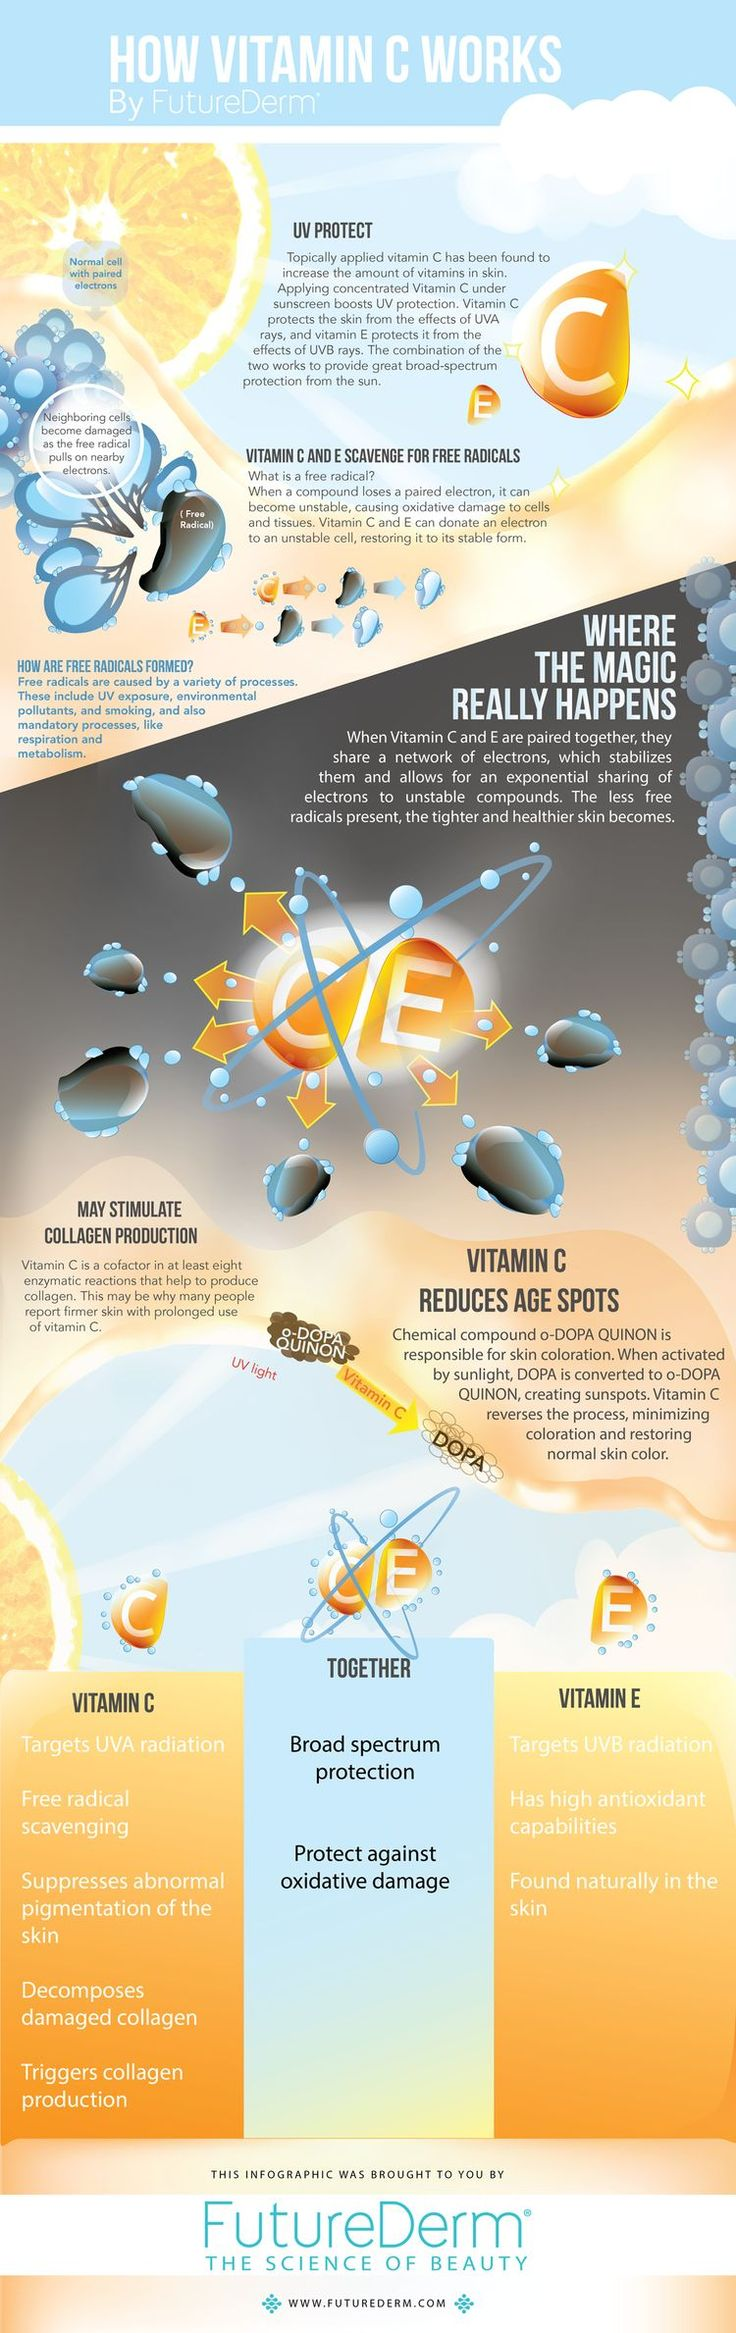 Infographic: How Vitamin C Works! I use it everyday! Try our fav from Image Skincare! Vital C at Tryst Studio! Contact me see the difference for yourself! #FF #vitaminA #vitaminC #instafollow